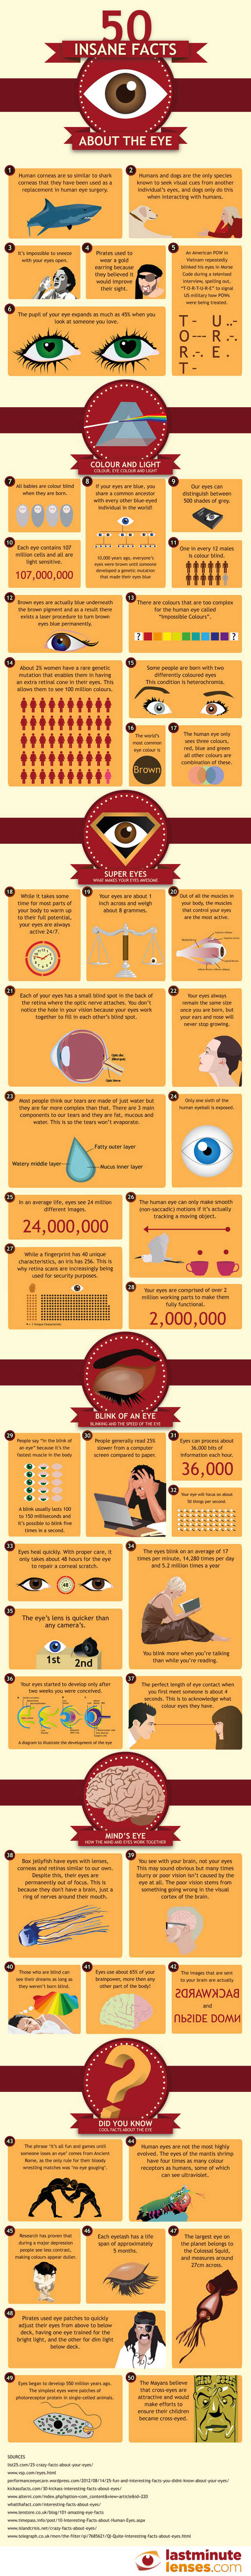 50 insane facts about the Eye